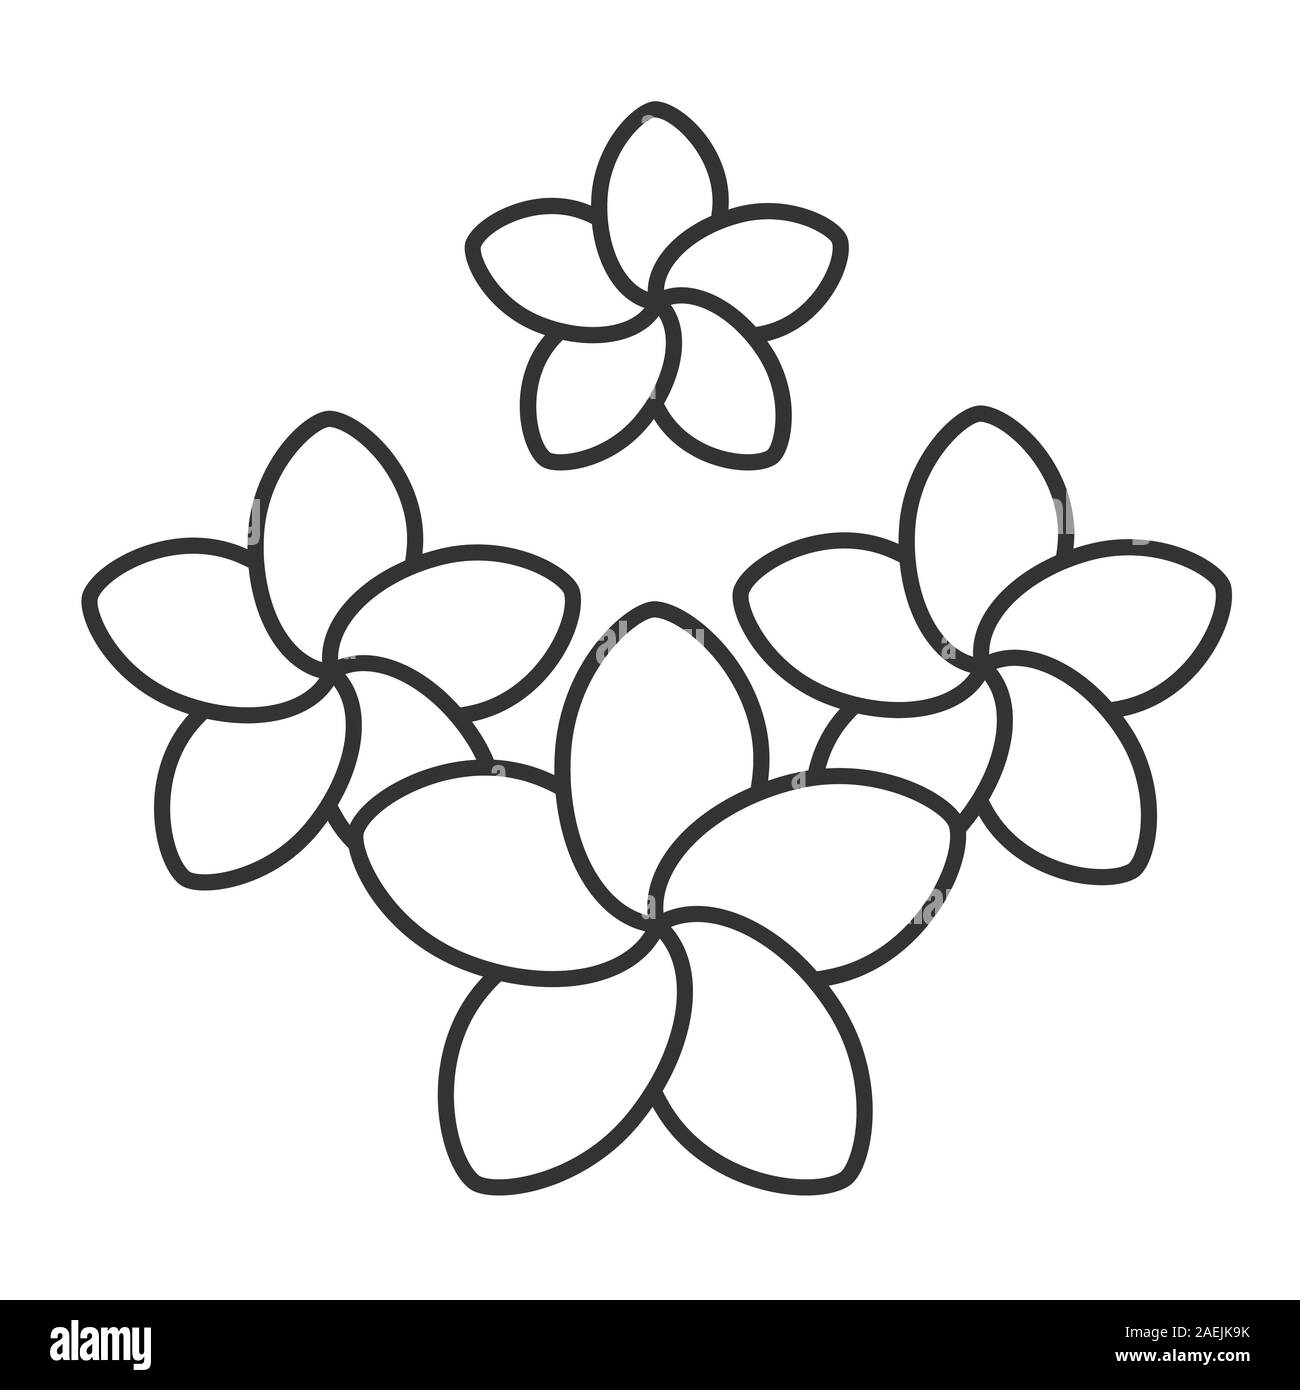 Plumeria Flowers Black And White Stock Photos Images Alamy